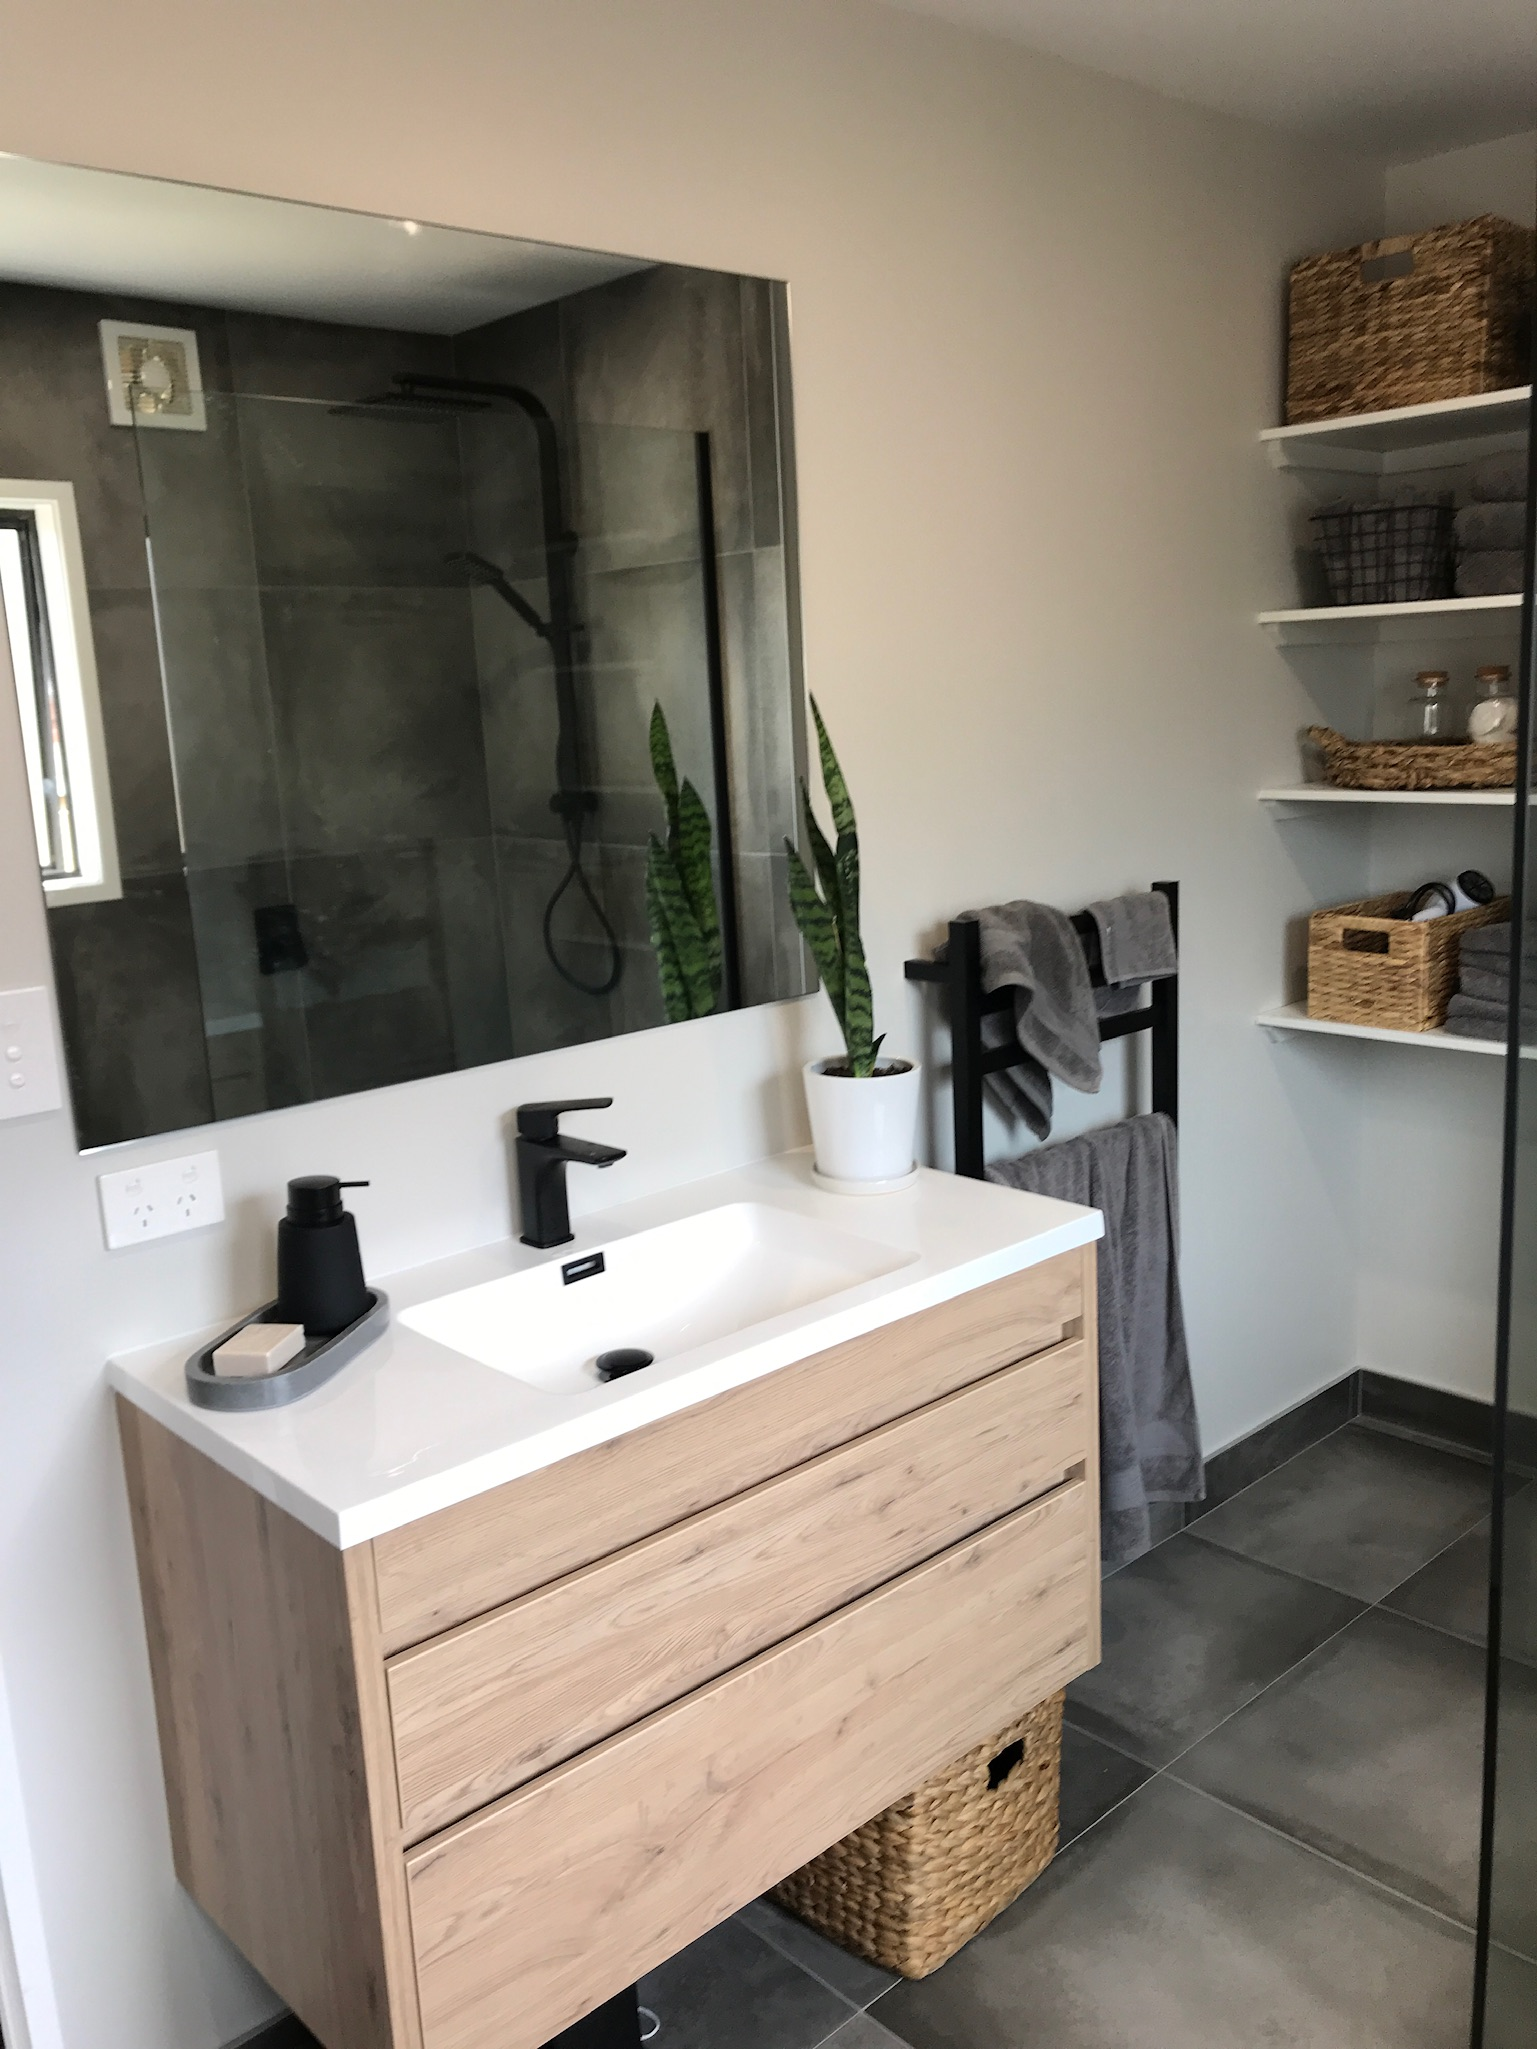 Bathrooms & Kitchens renovation in Milford